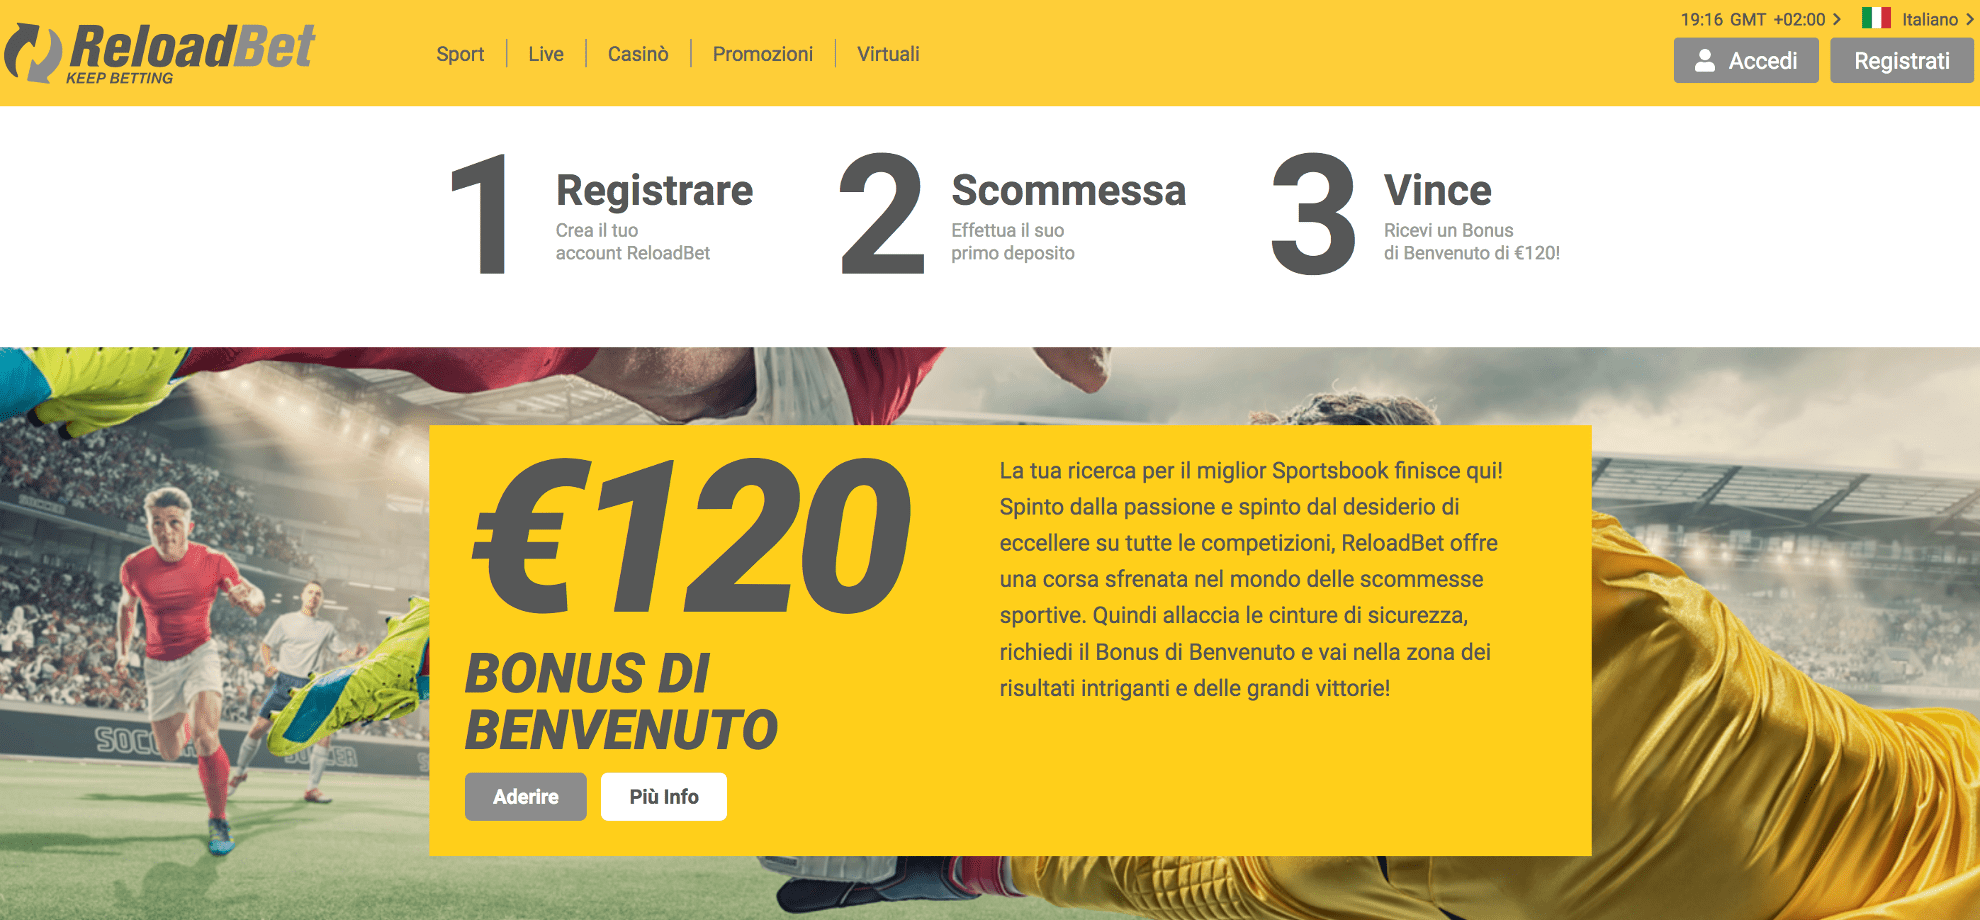 Reloadbet sito scommesse non aams